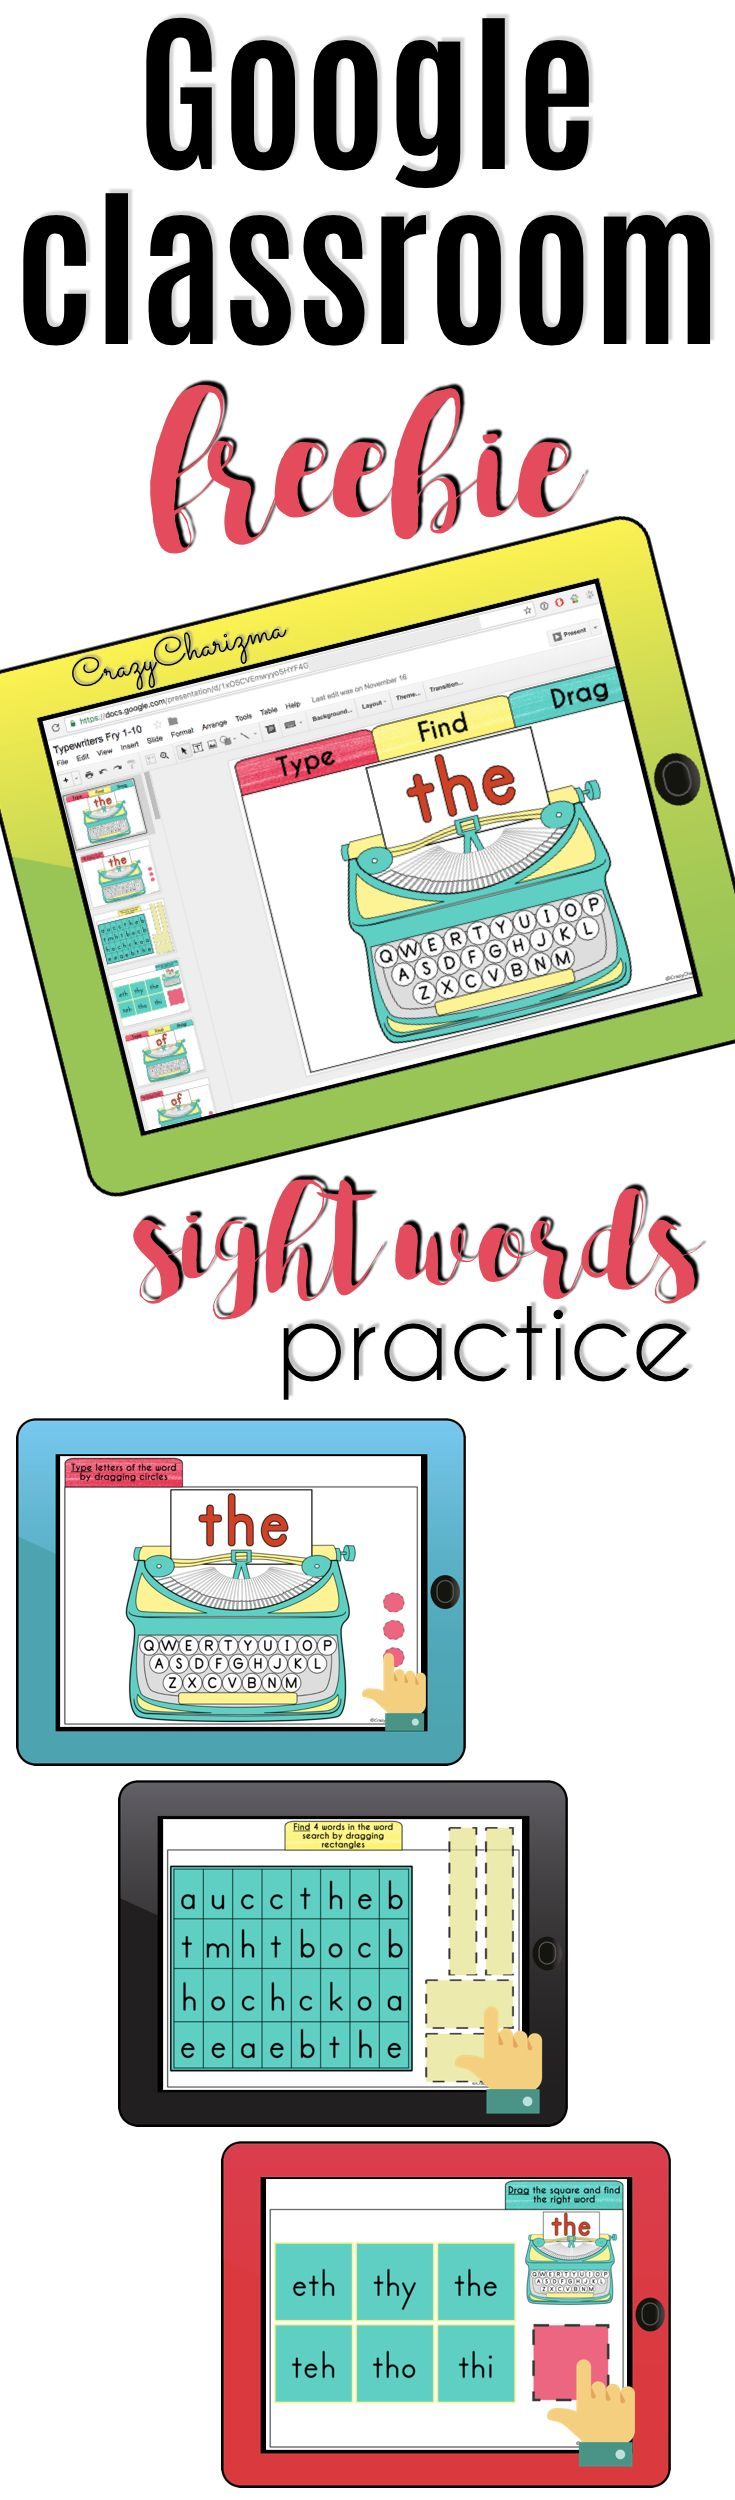 Go {Google} now! Would you like to go paperless and engage your kids? Looking for something you can use over and over? Embrace technology - use Google Classroom now! Practice sight words with these digital typewriters (FREEBIE in preview images). | CrazyCharizma